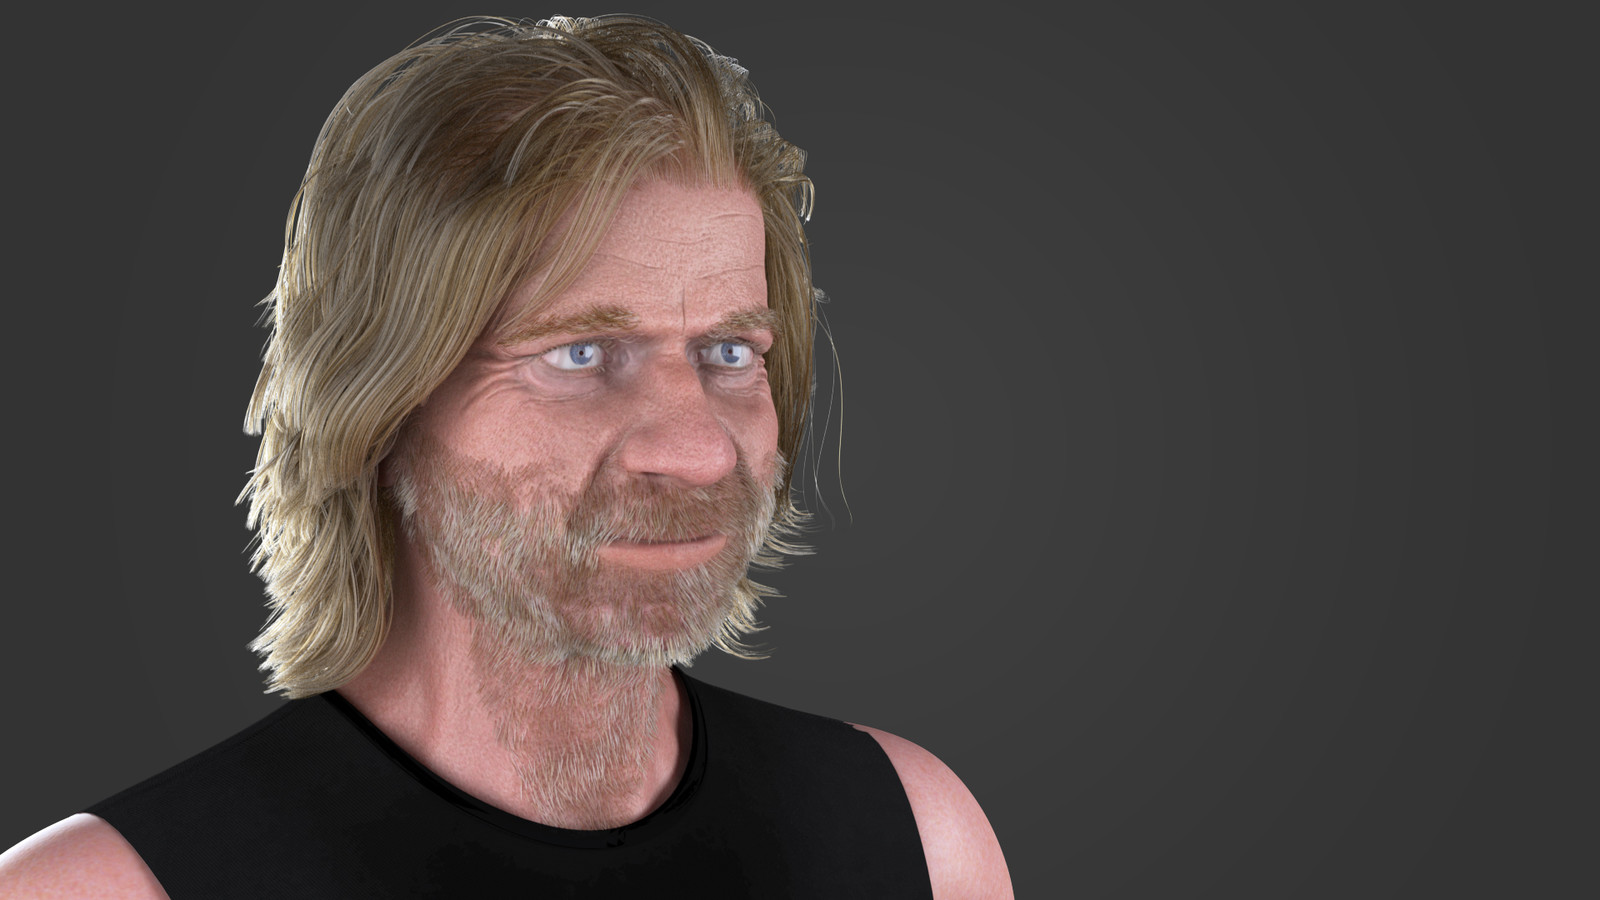 William H. Macy as Frank Gallagher from Shameless